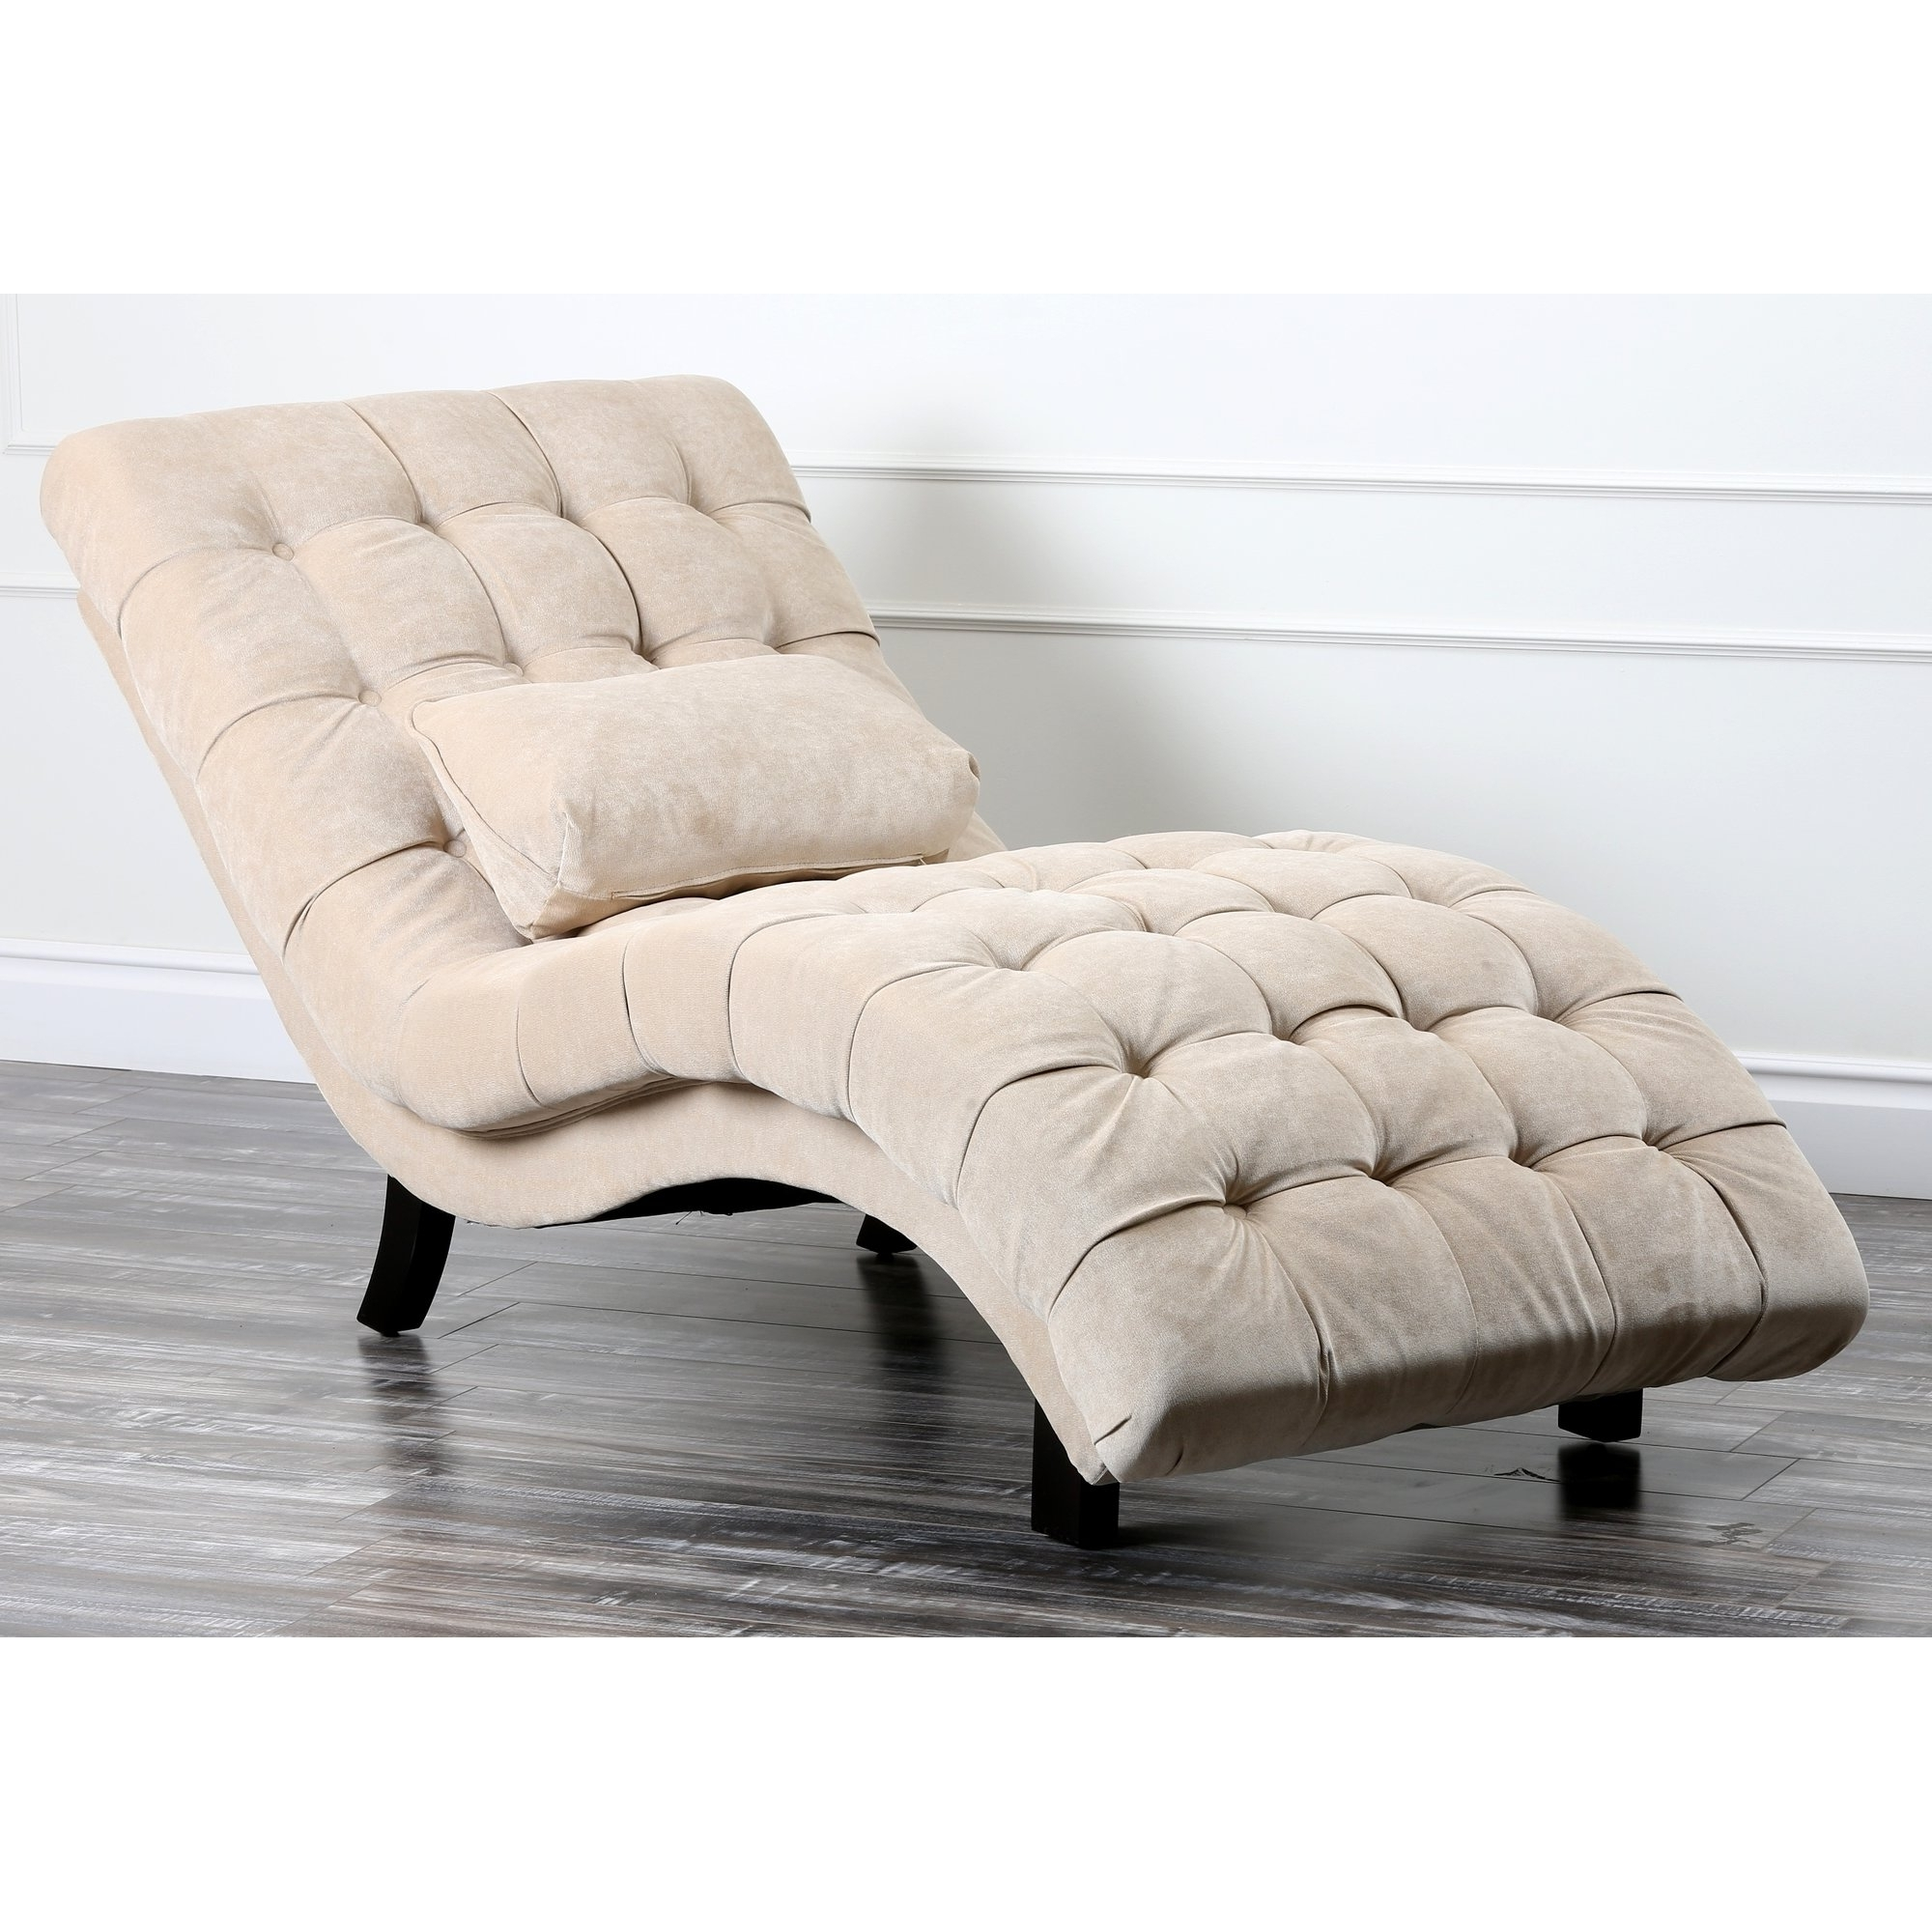 Popular Comfy Chaise Lounge Chairs • Lounge Chairs Ideas Regarding Chaise Lounge Chairs For Bedroom (View 9 of 15)